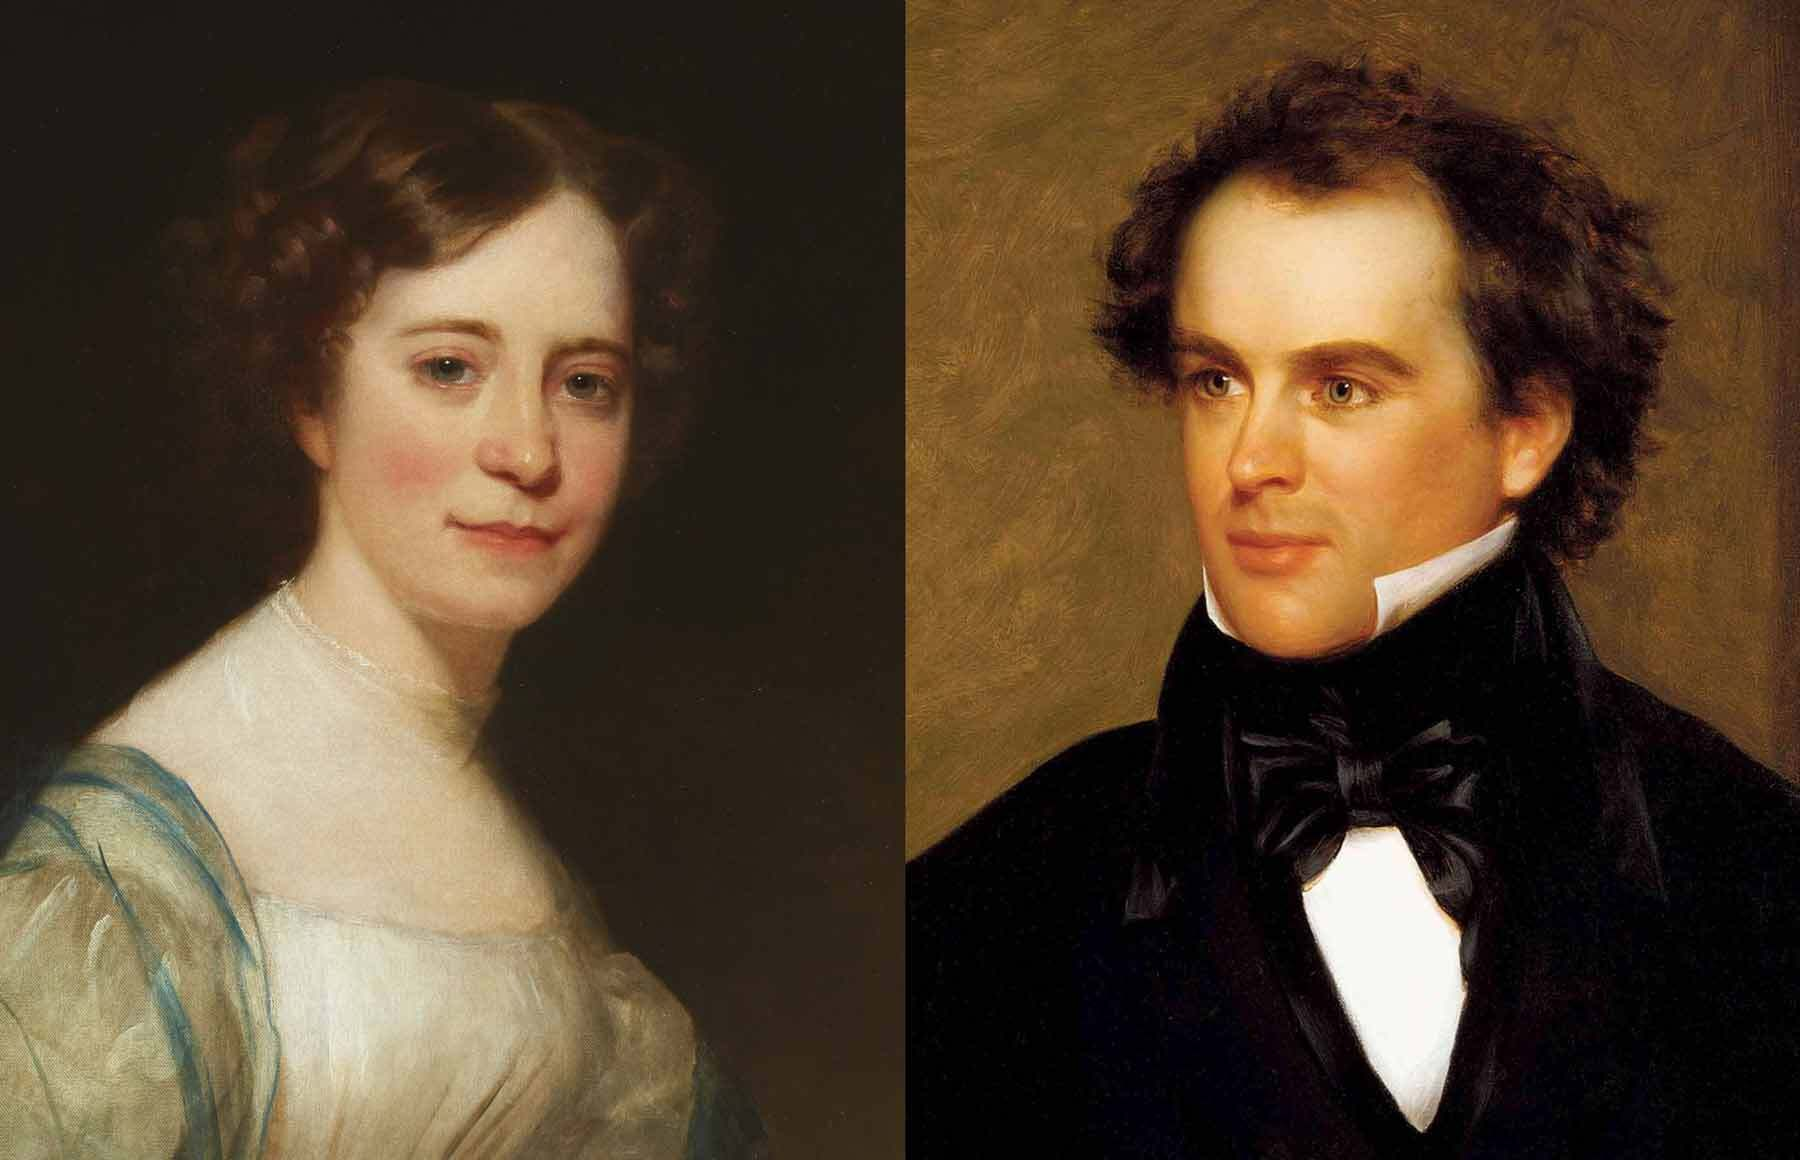 Sophia Peabody and Nathaniel Hawthorne